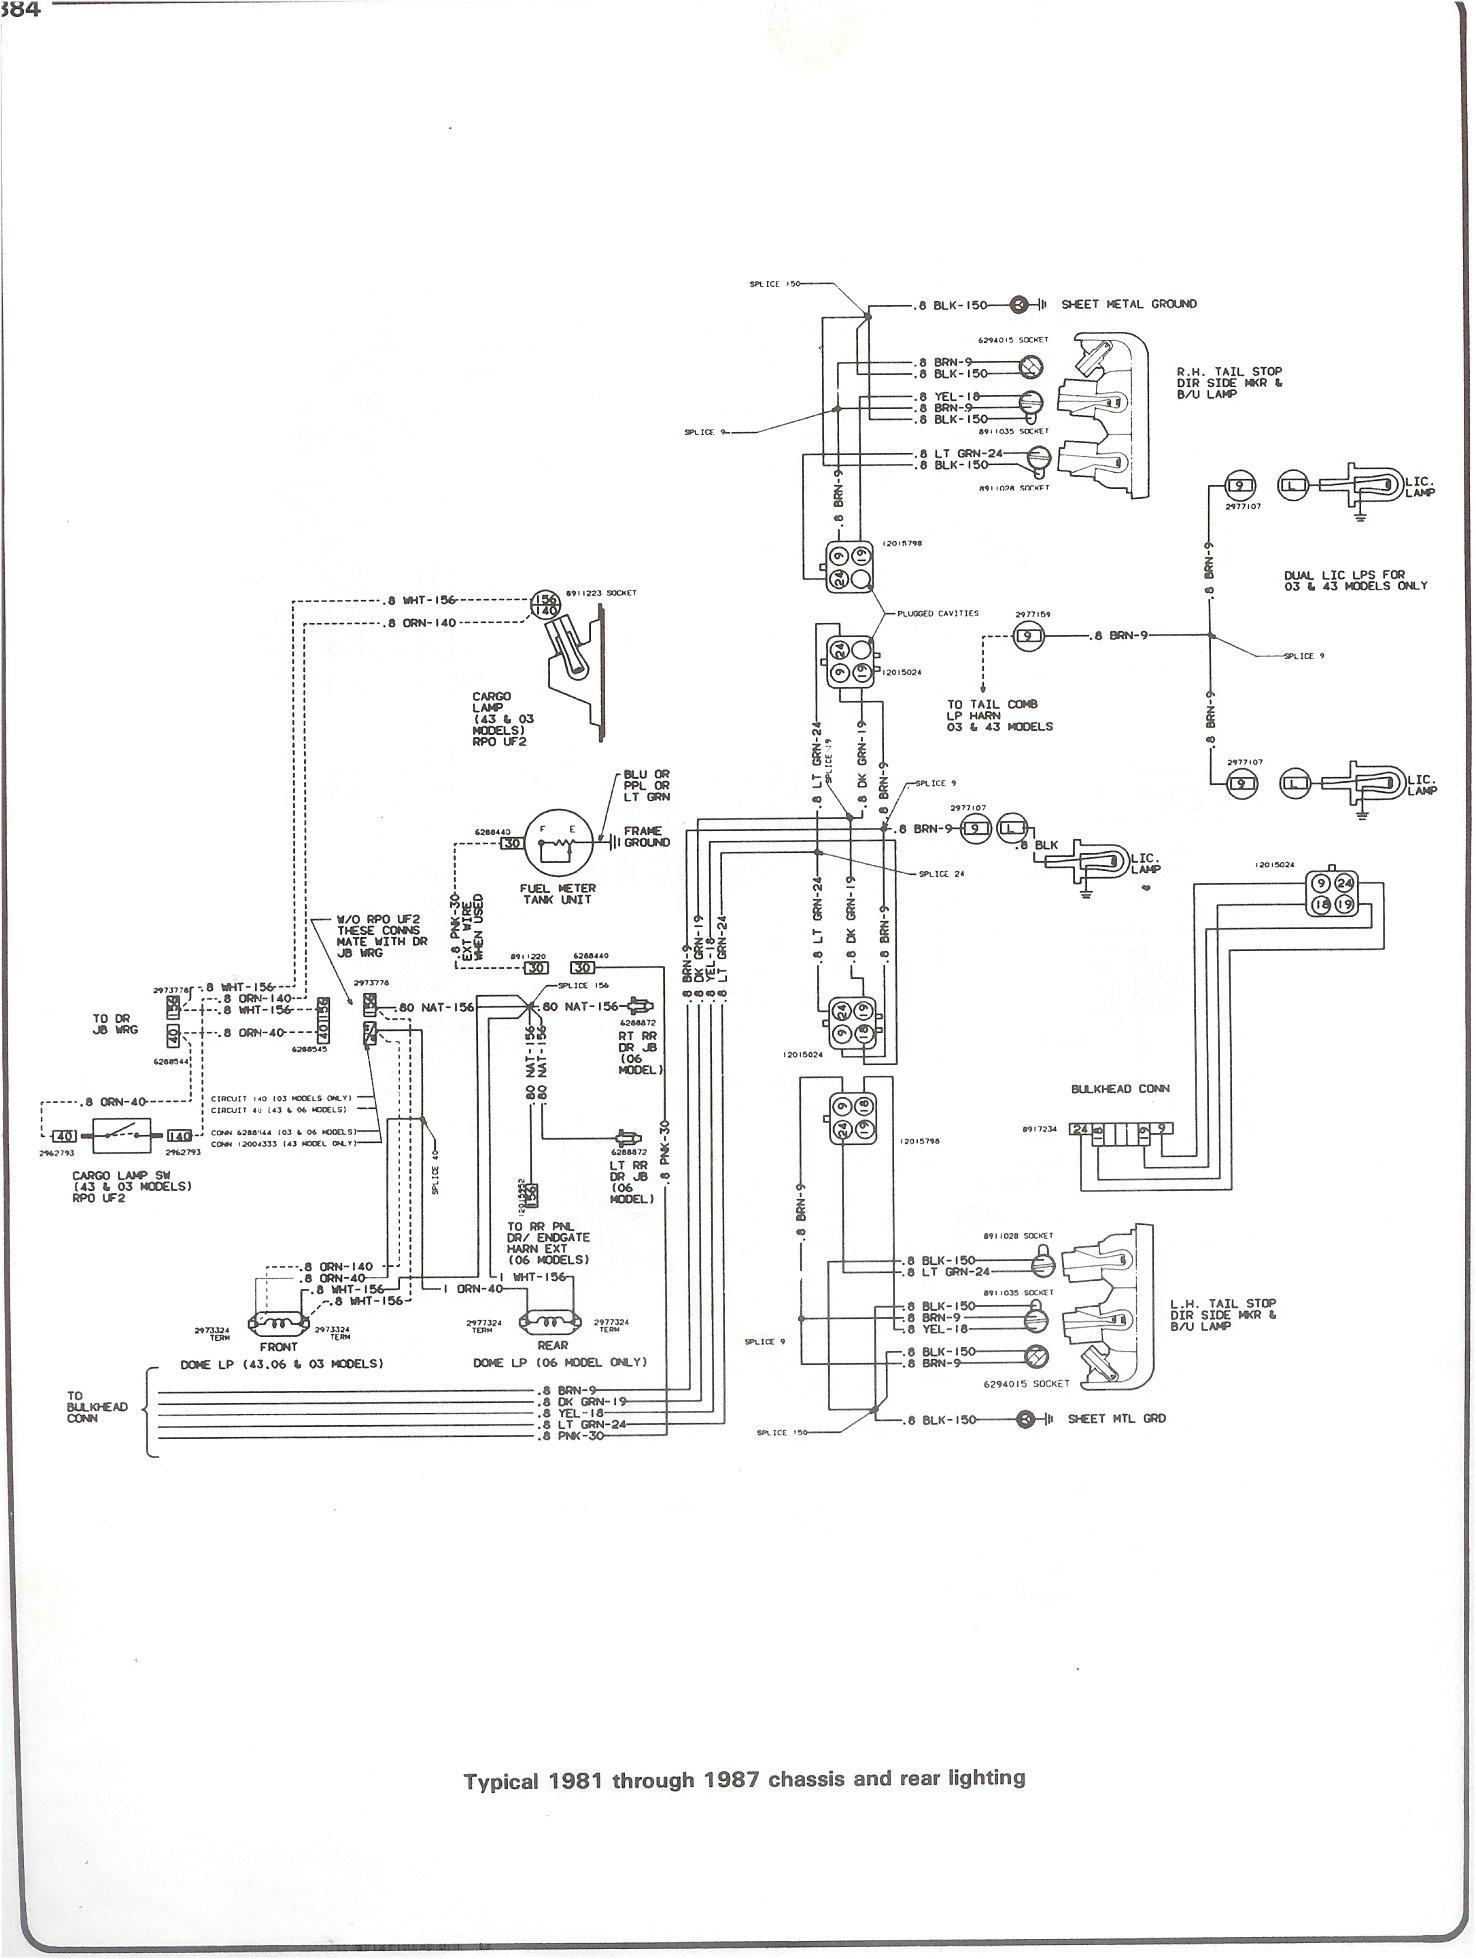 1982 chevy c10 wiring diagram air conditioning 7b514e 1980 chevy k10 fuse box diagram wiring resources  7b514e 1980 chevy k10 fuse box diagram